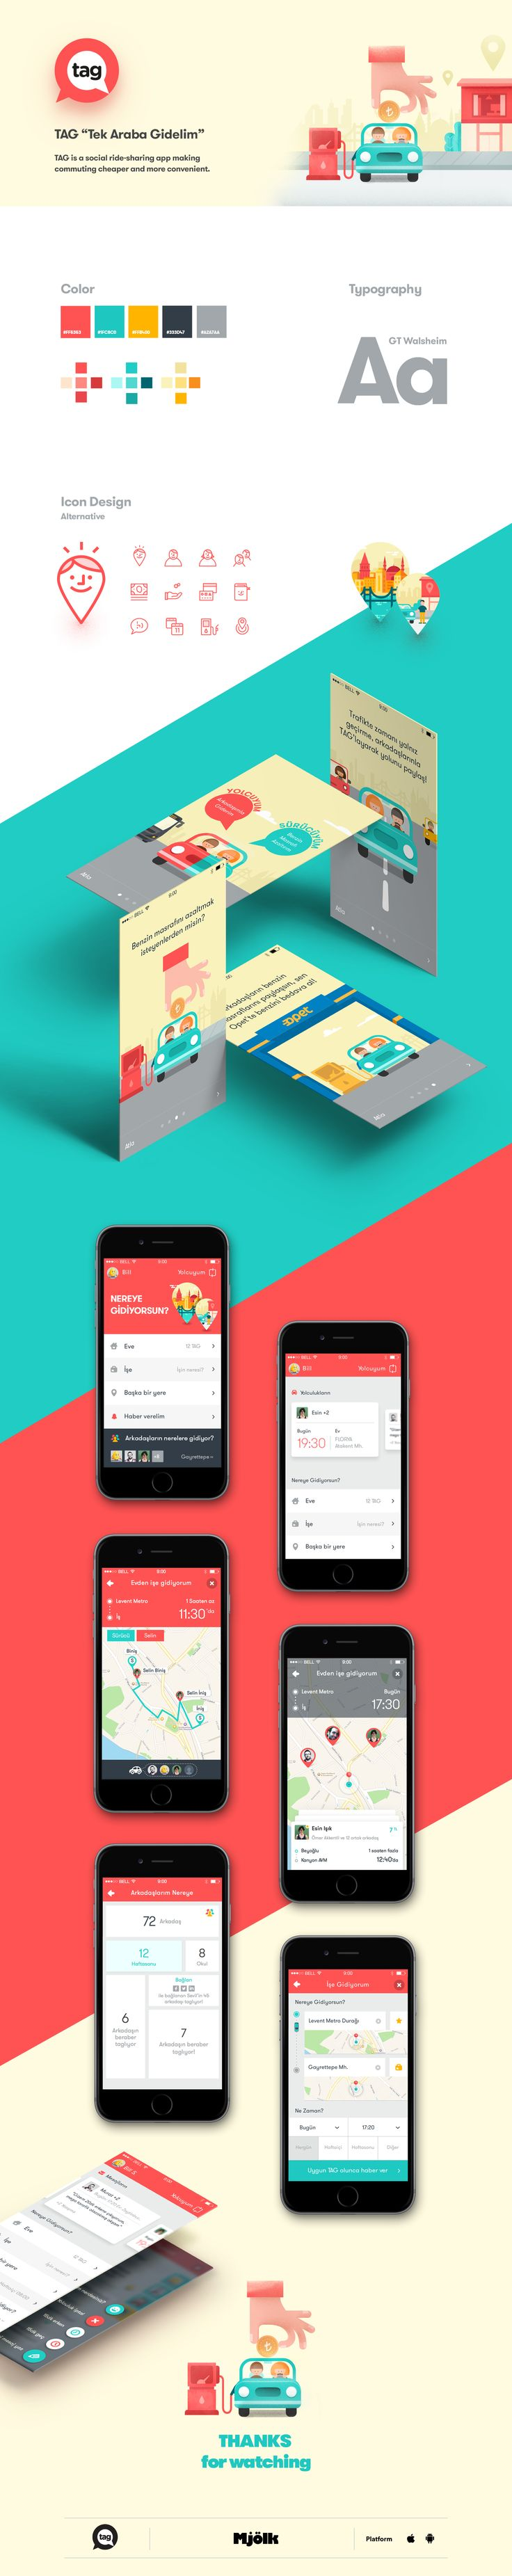 Showcase And Discover Creative Work On The World S Leading Online Platform For Creative Industries App Ui Designmobile